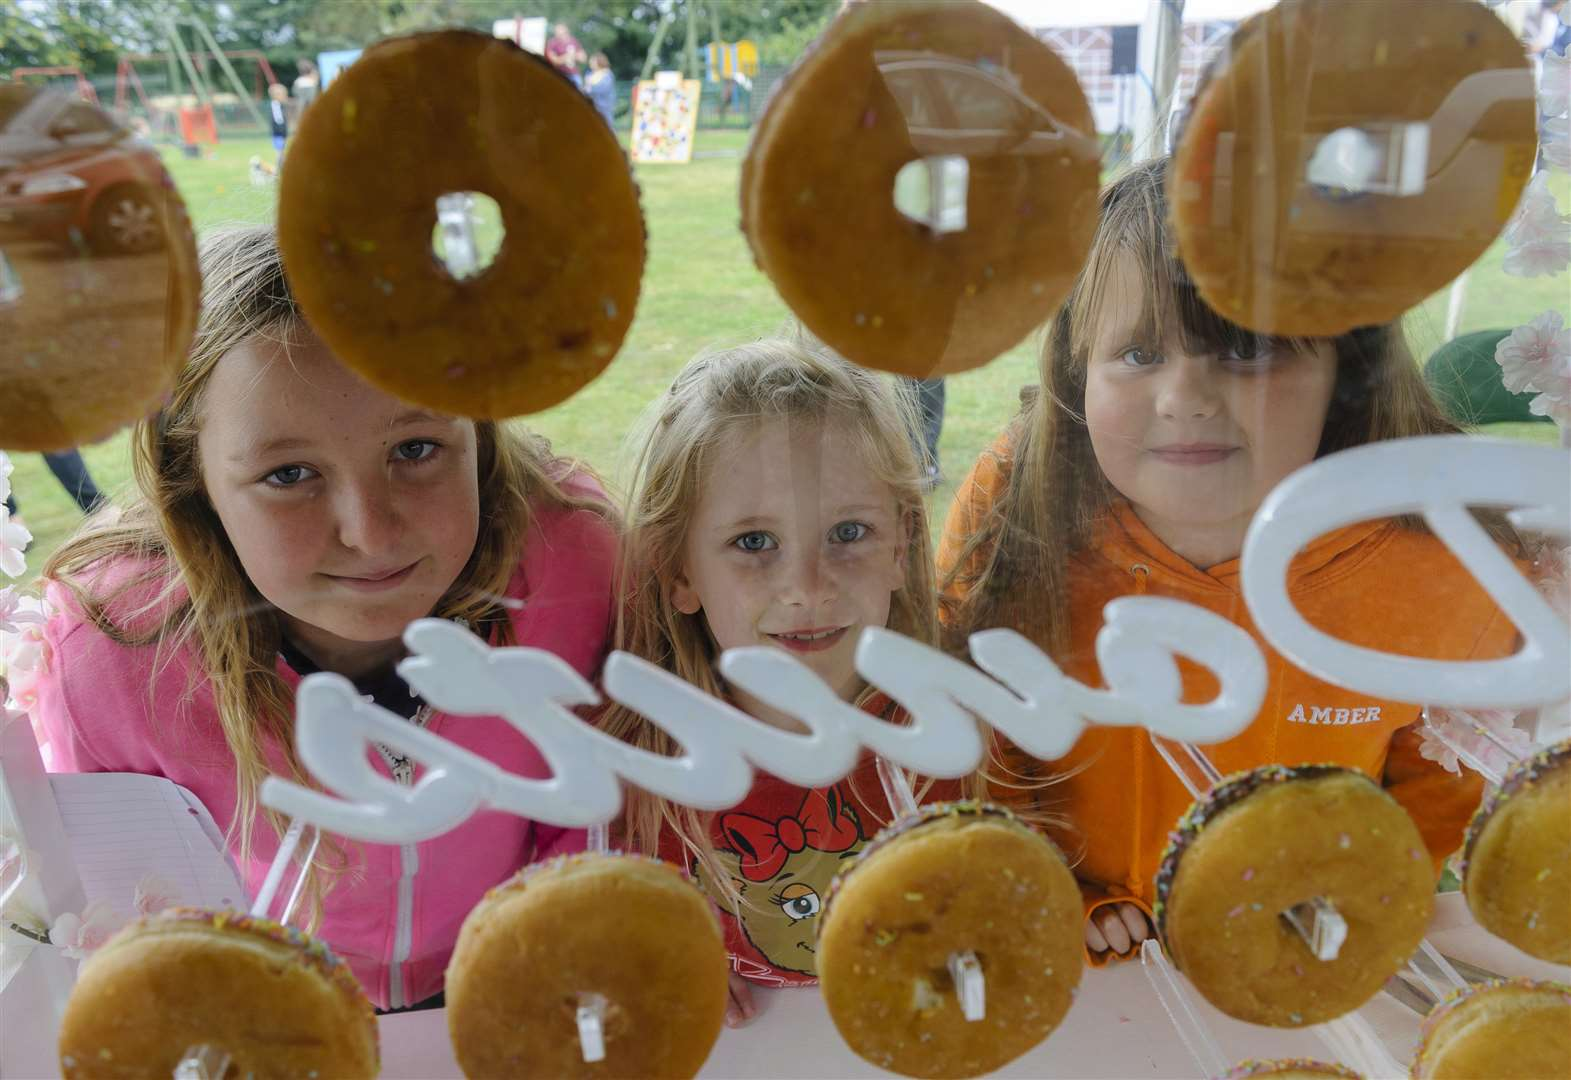 A day full of music, food and fun activities at Occold summer fete